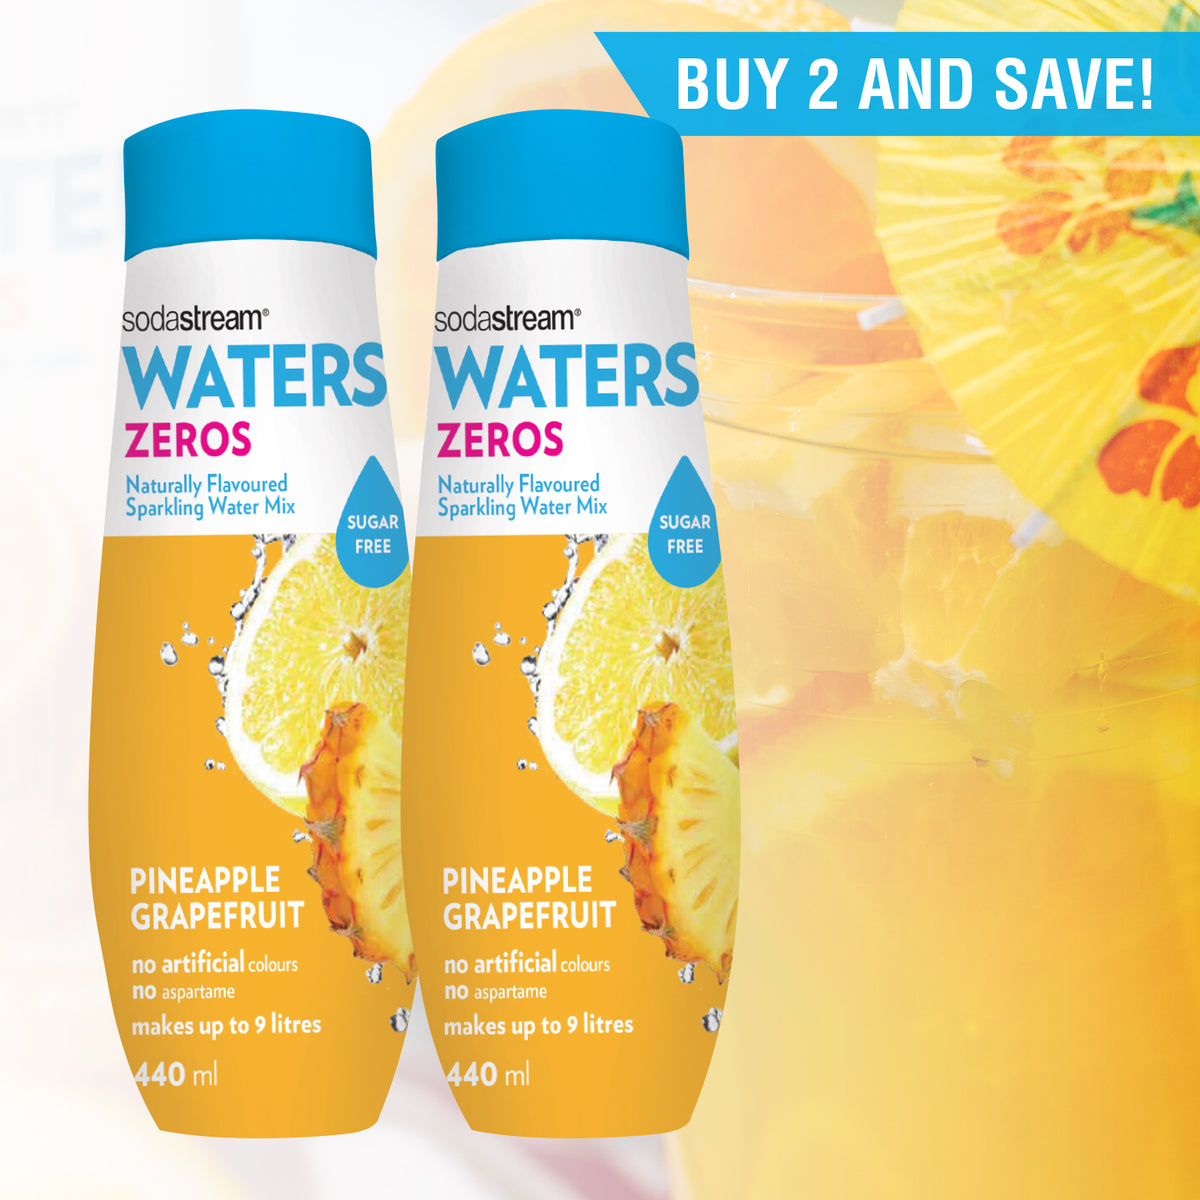 LIMITED TIME TWIN PACK SPECIAL ! SodaStream Zeros Pineapple Grapefruit Drink Mix (Stevia based, Sugar-free) - BB 01/12/2021